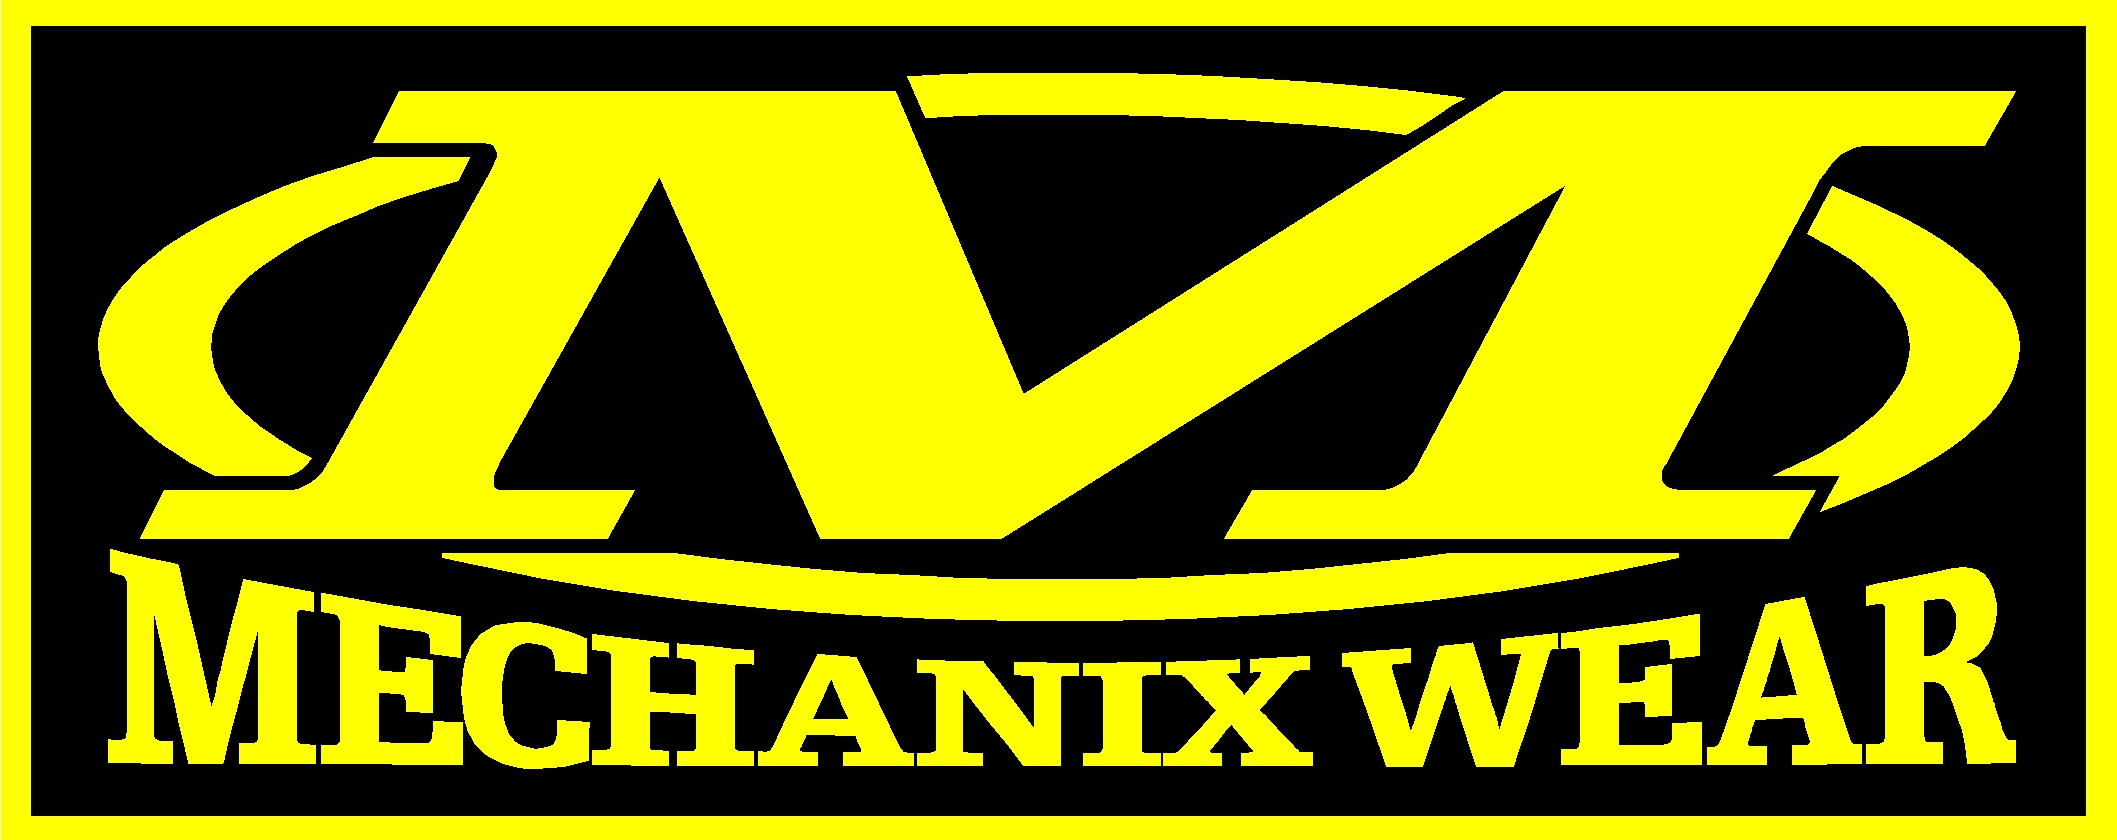 Mechanix Wear Logo Rocket Fireworks Mechanix Wear